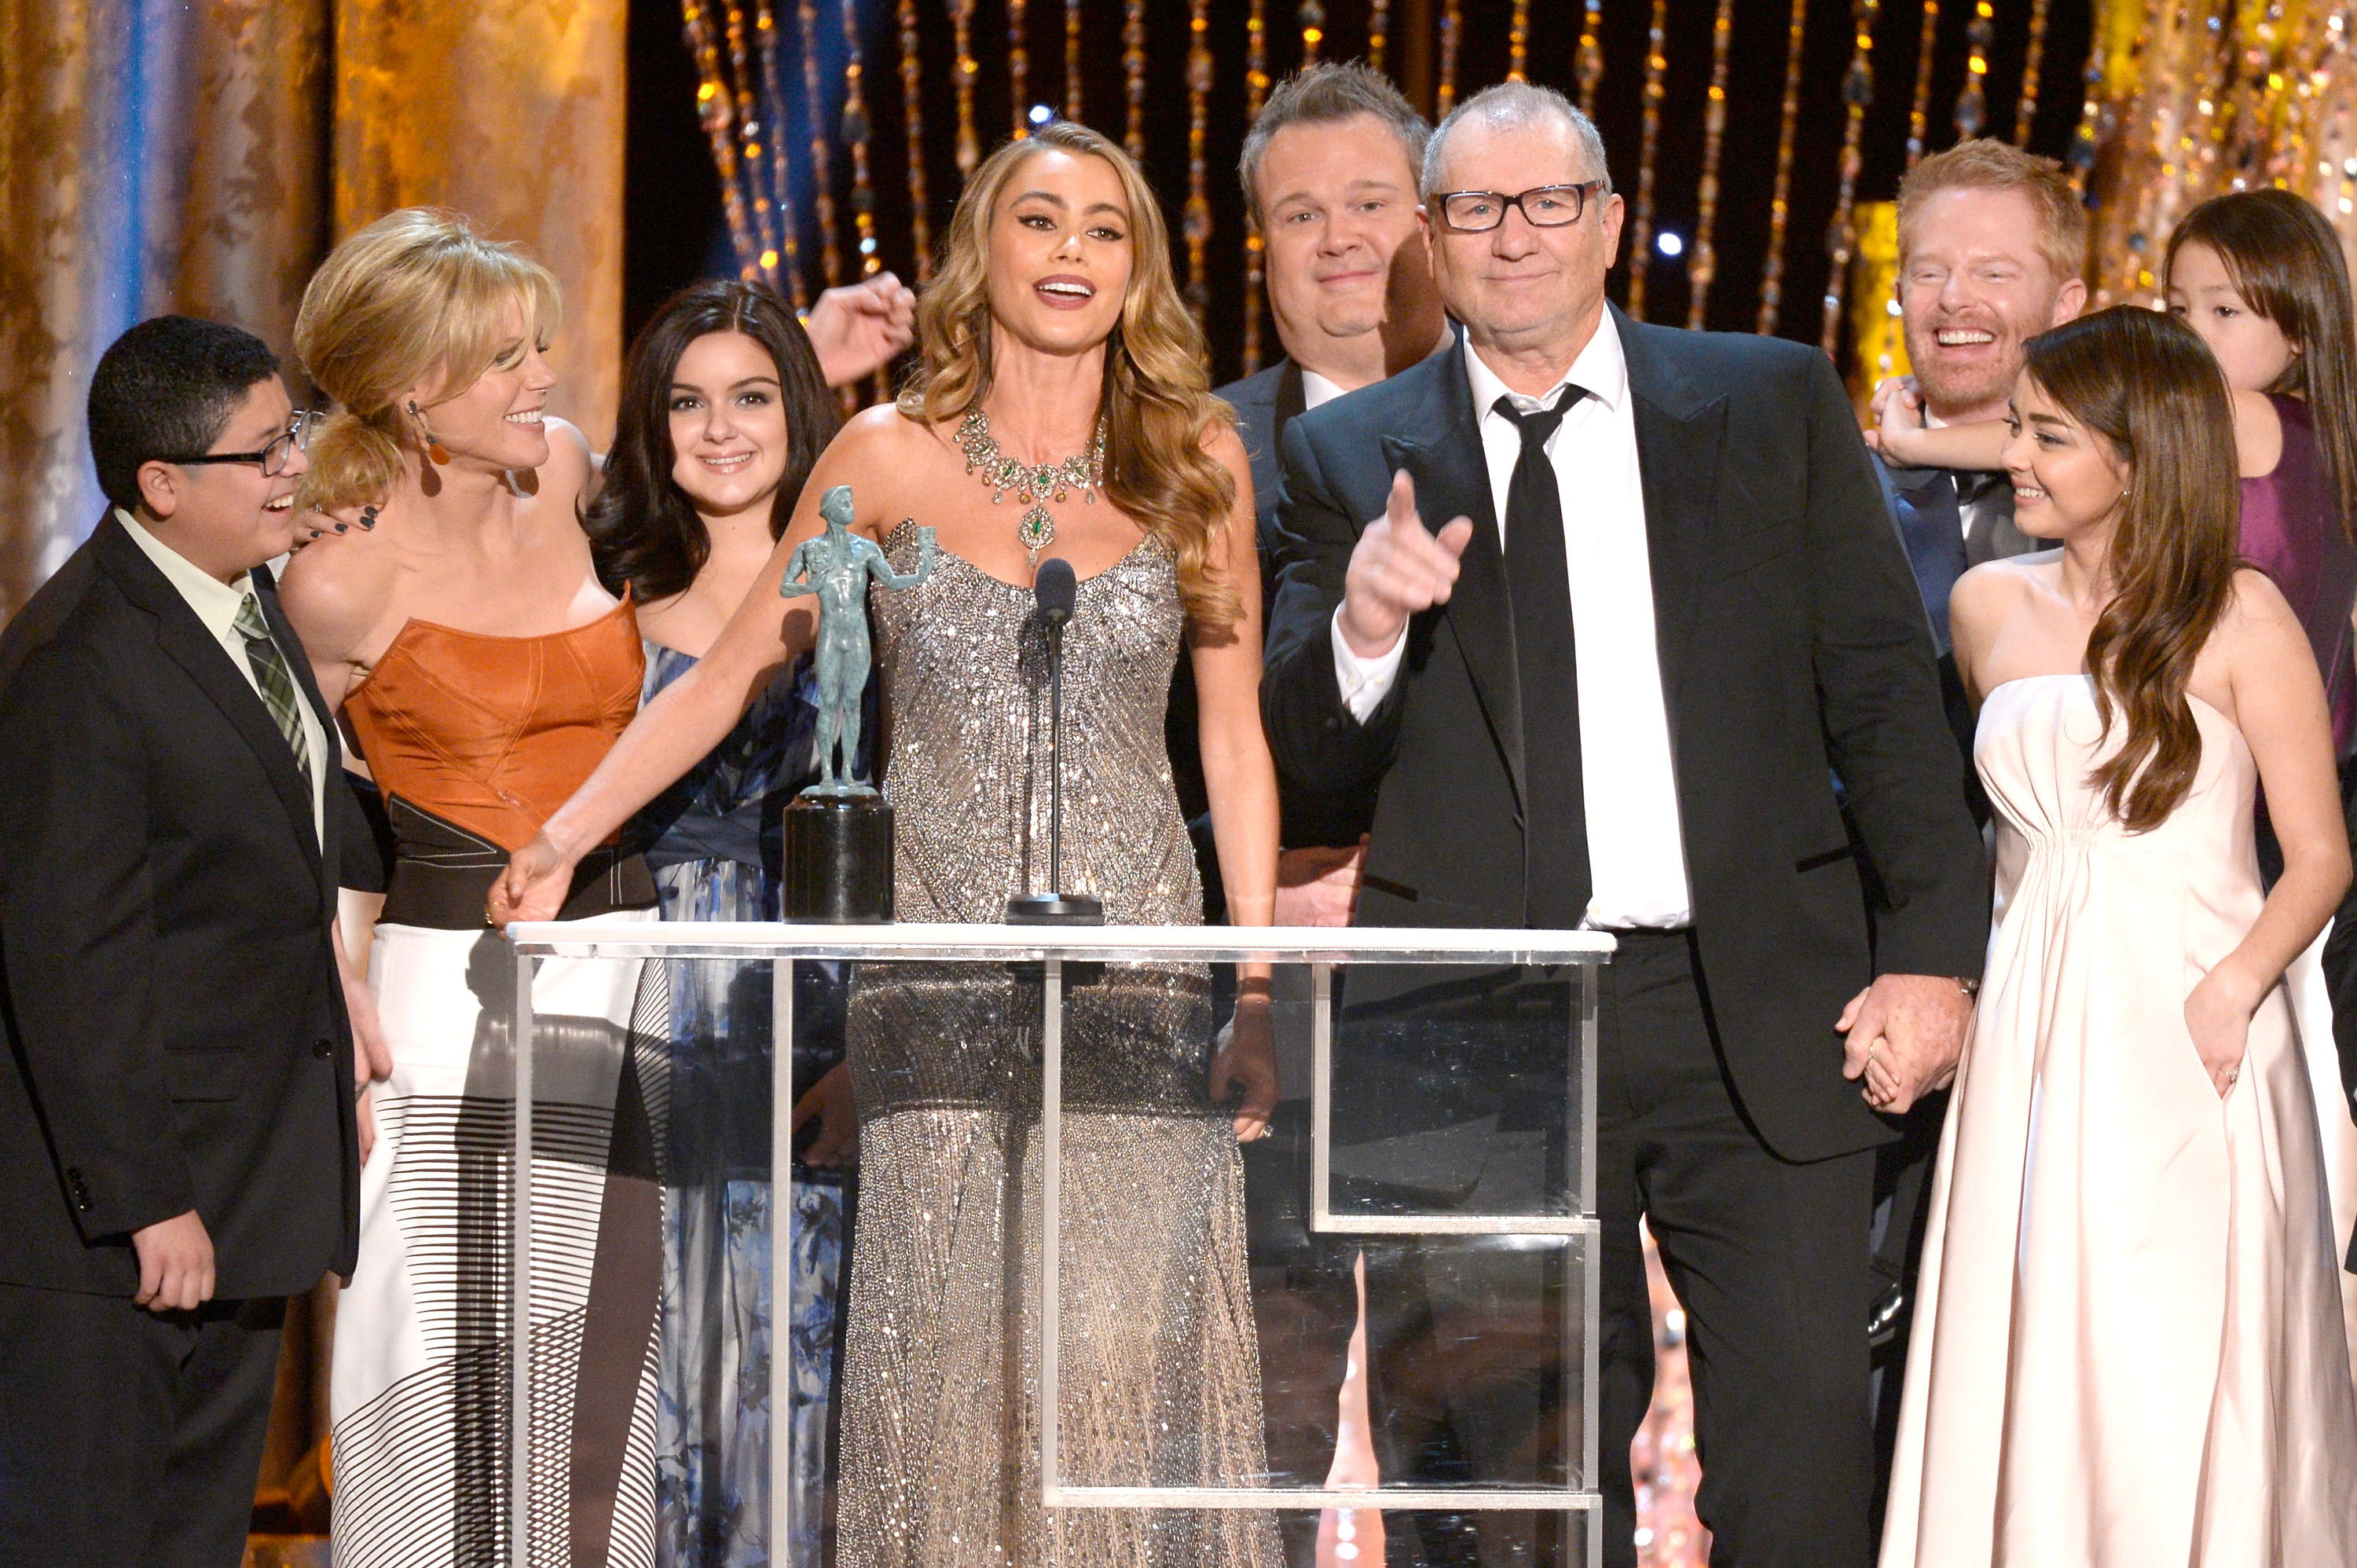 (L-R) Actors Rico Rodriguez, Julie Bowen, Ariel Winter, Sofia Vergara, Eric Stonestreet, Ed O'Neill, Jesse Tyler Ferguson, Sarah Hyland and Aubrey Anderson-Emmons accept the Outstanding Performance by an Ensemble in a Comedy Series award for 'Modern Family' onstage during the 20th Annual Screen Actors Guild Awards in Los Angeles on Jan. 18, 2014.